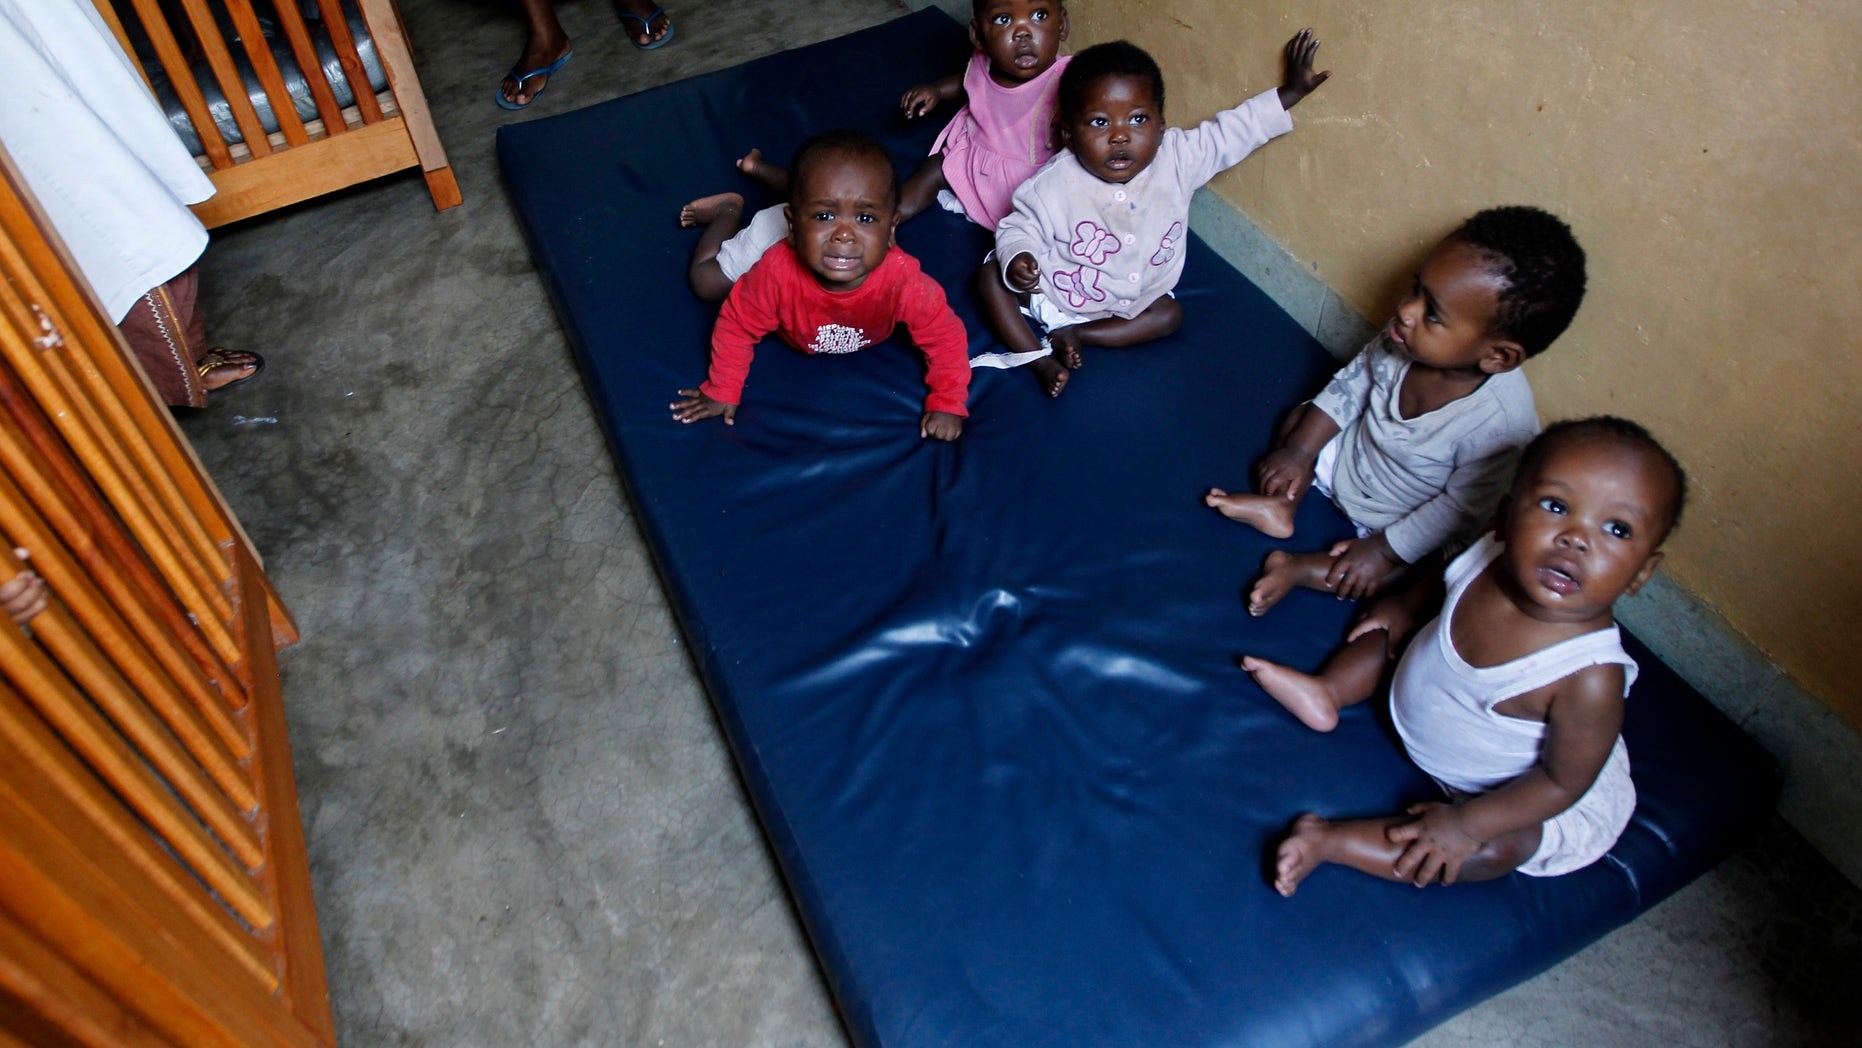 Abandoned children play at the Don Bosco Ngangi community center in the Democratic Republic of the Congo. The center was established in 1988 and hosts over 3,000 abandoned children and HIV/AIDS victims.(REUTERS/Thomas Mukoya)